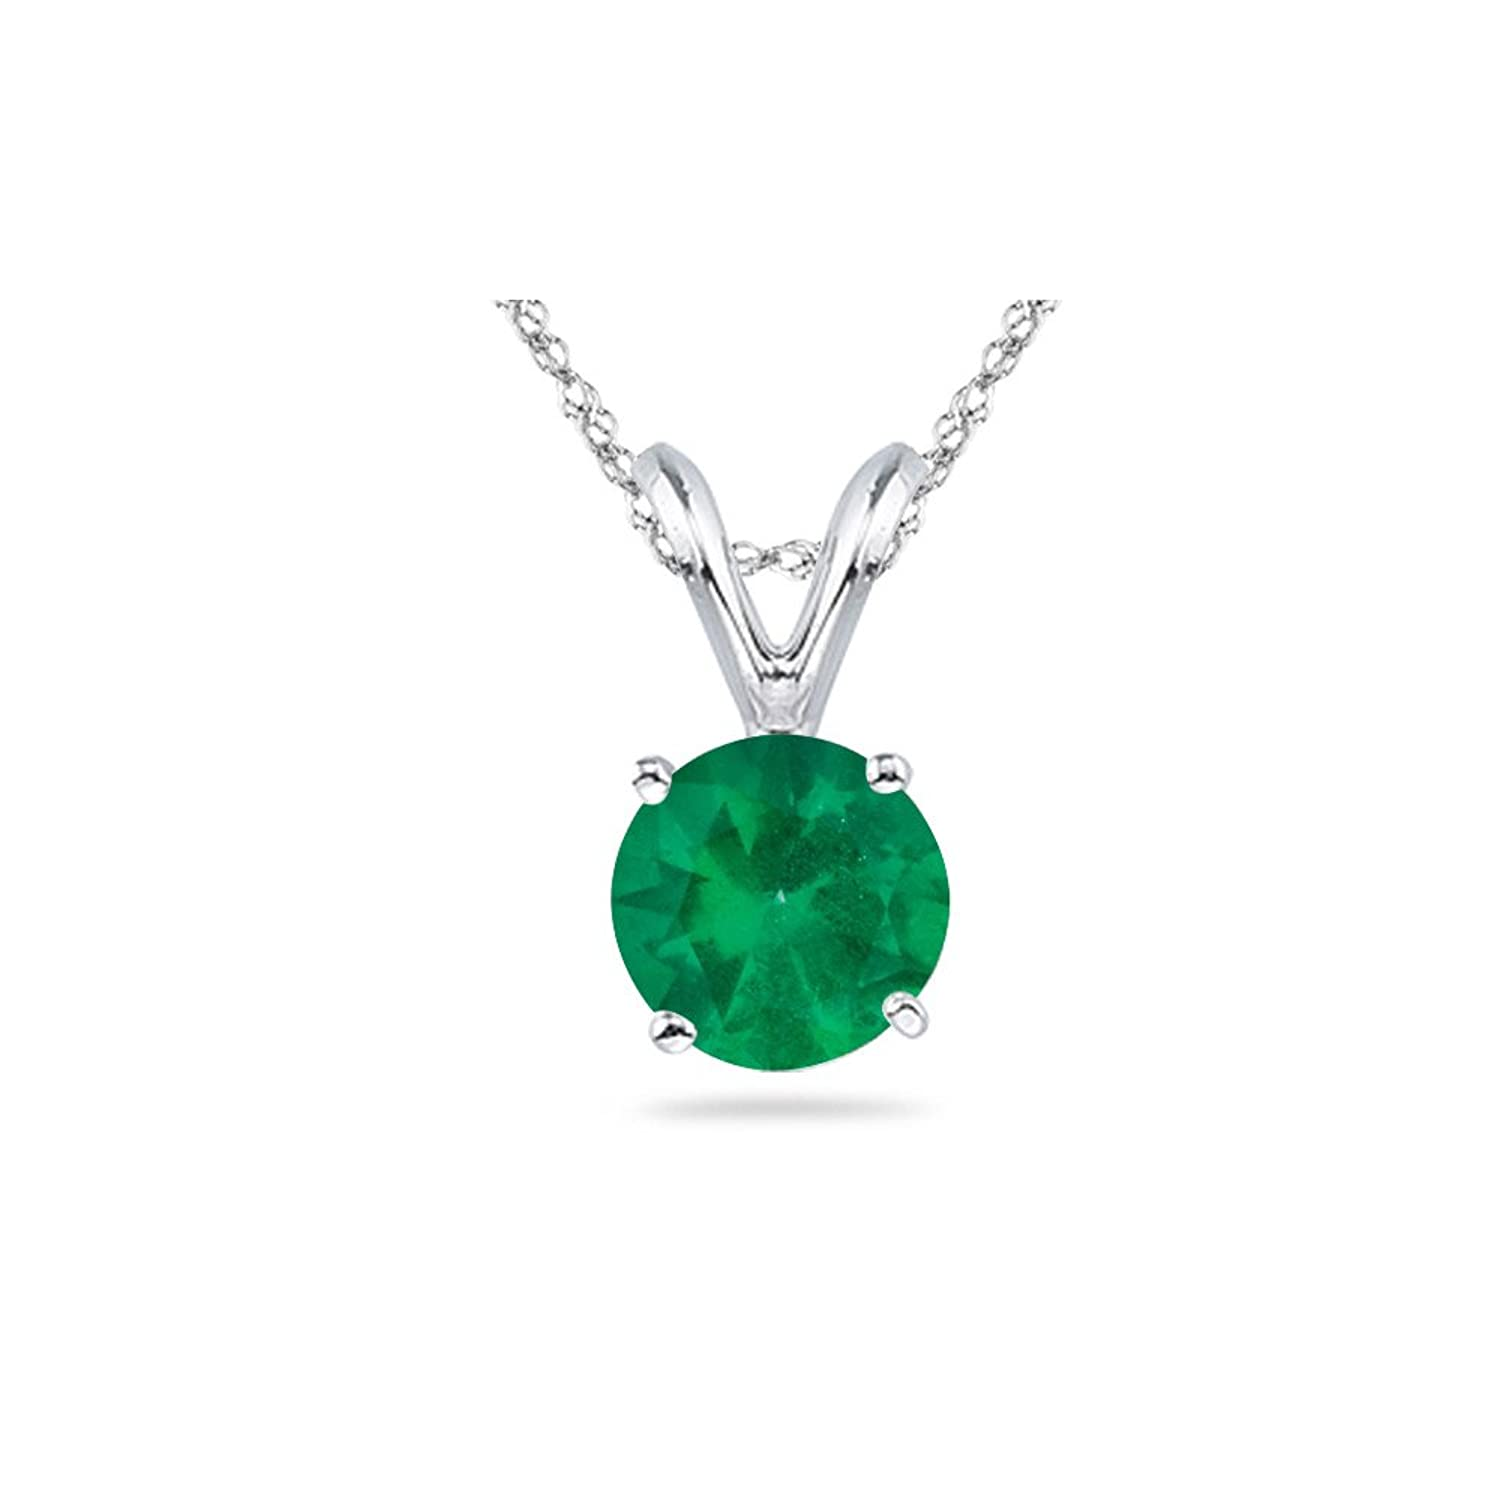 0.10 Cts of 3 mm AA Round Natural Emerald Solitaire Pendant in Platinum